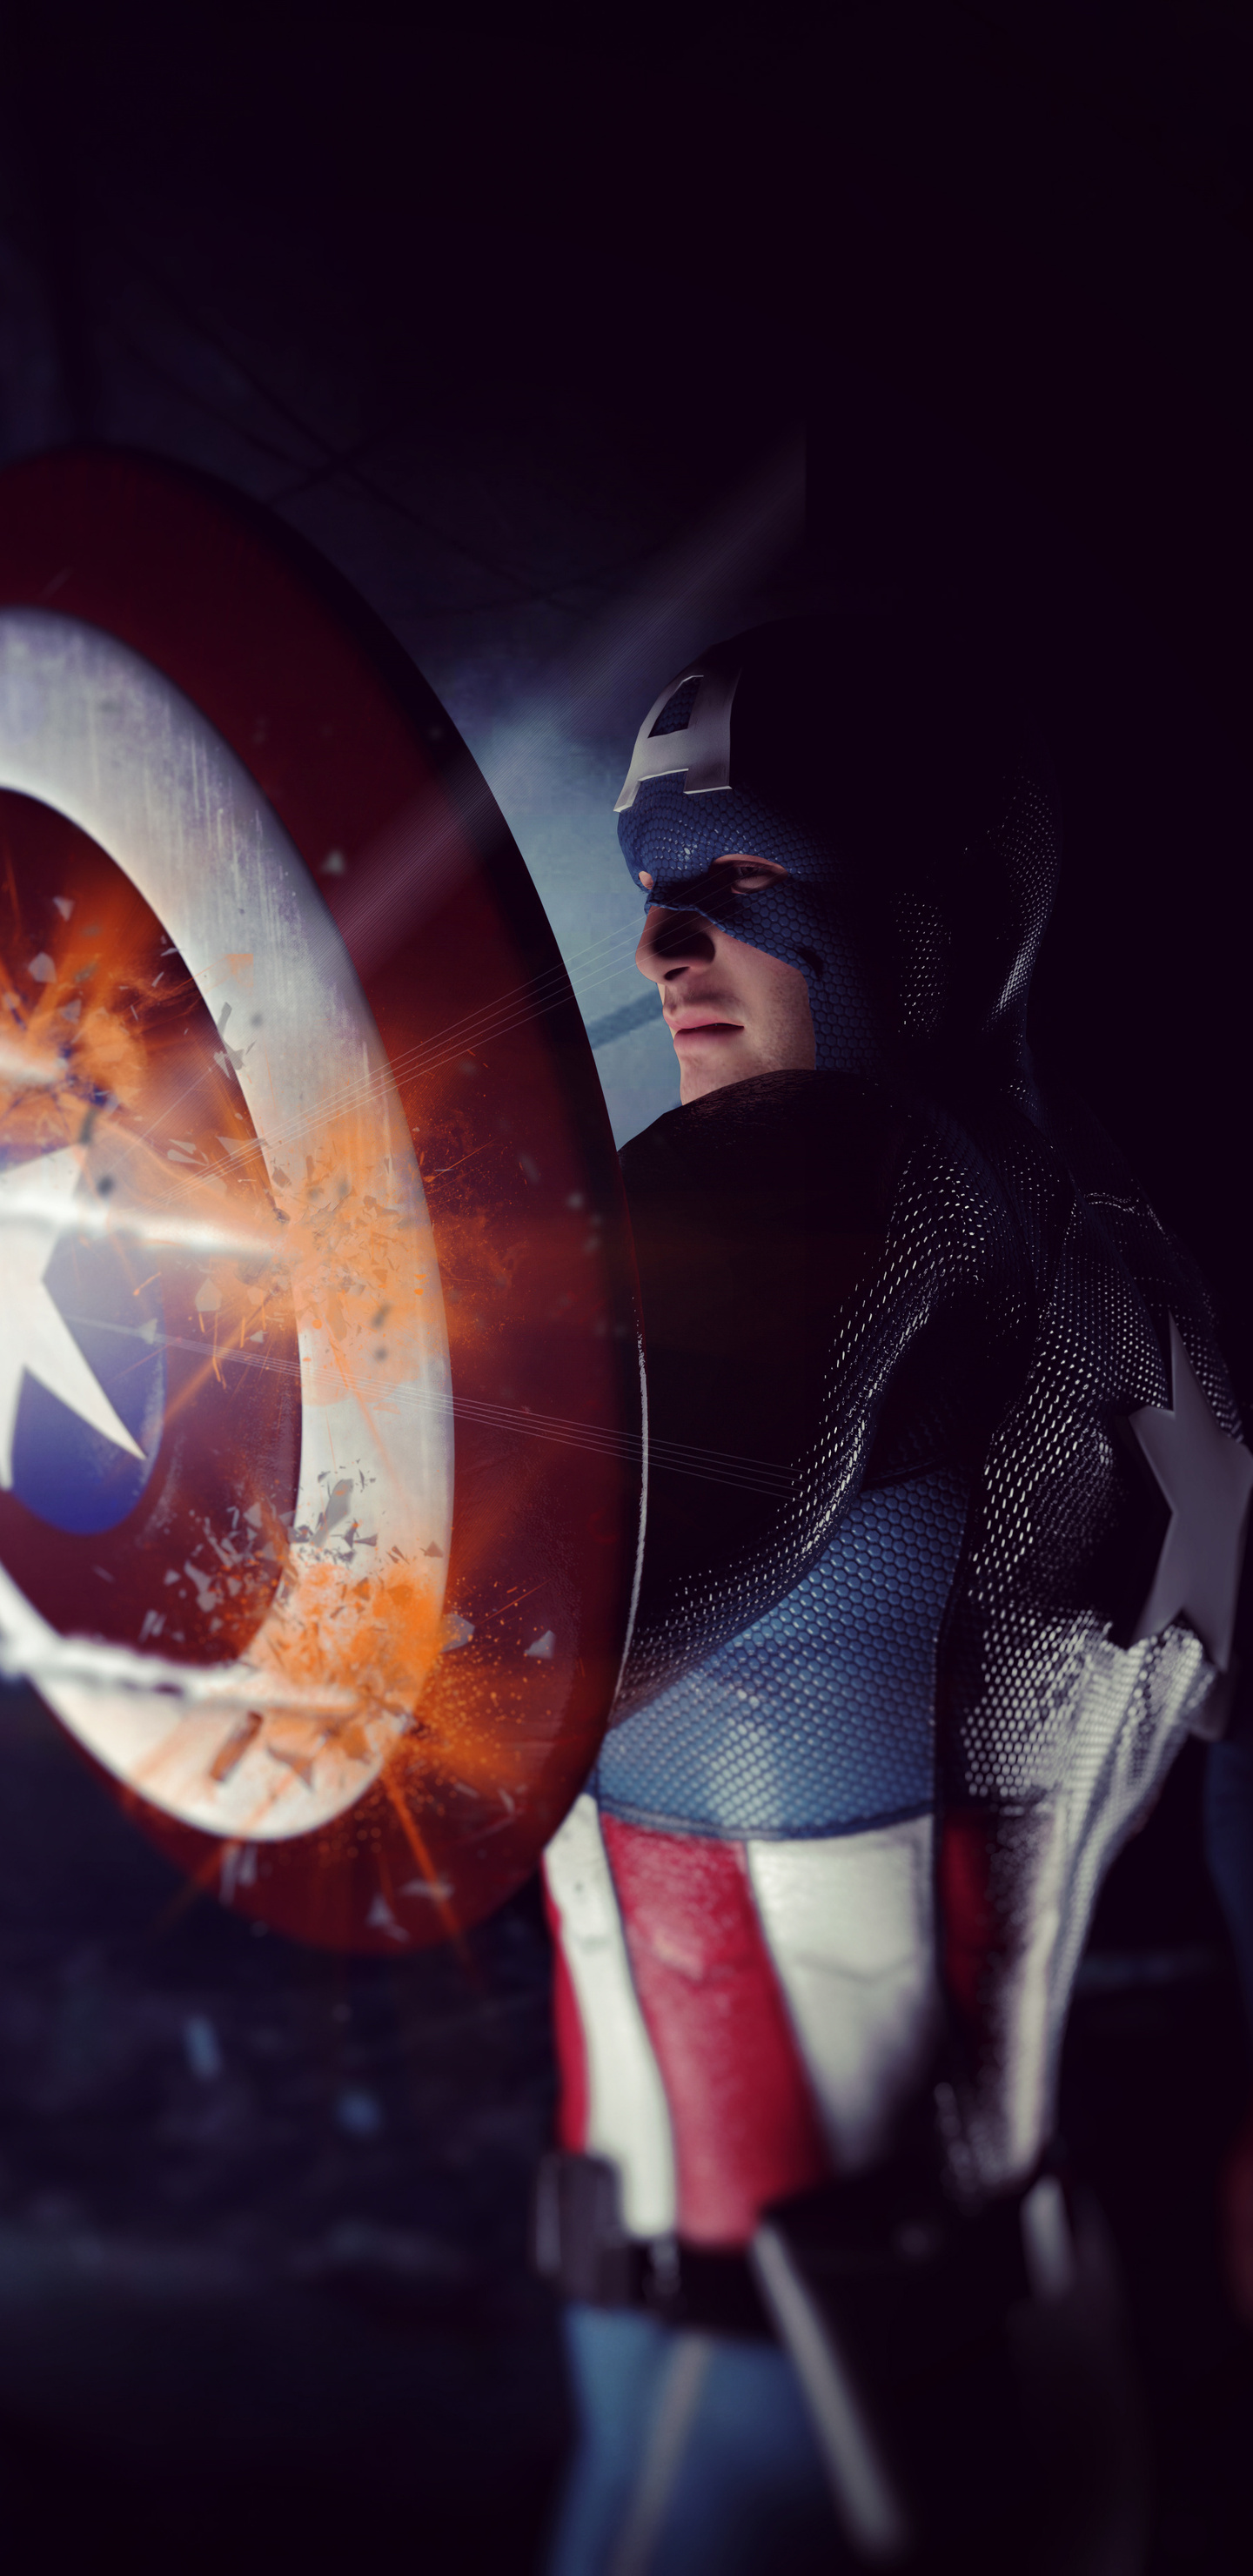 captain-america-the-winter-solider-artwork-pr.jpg